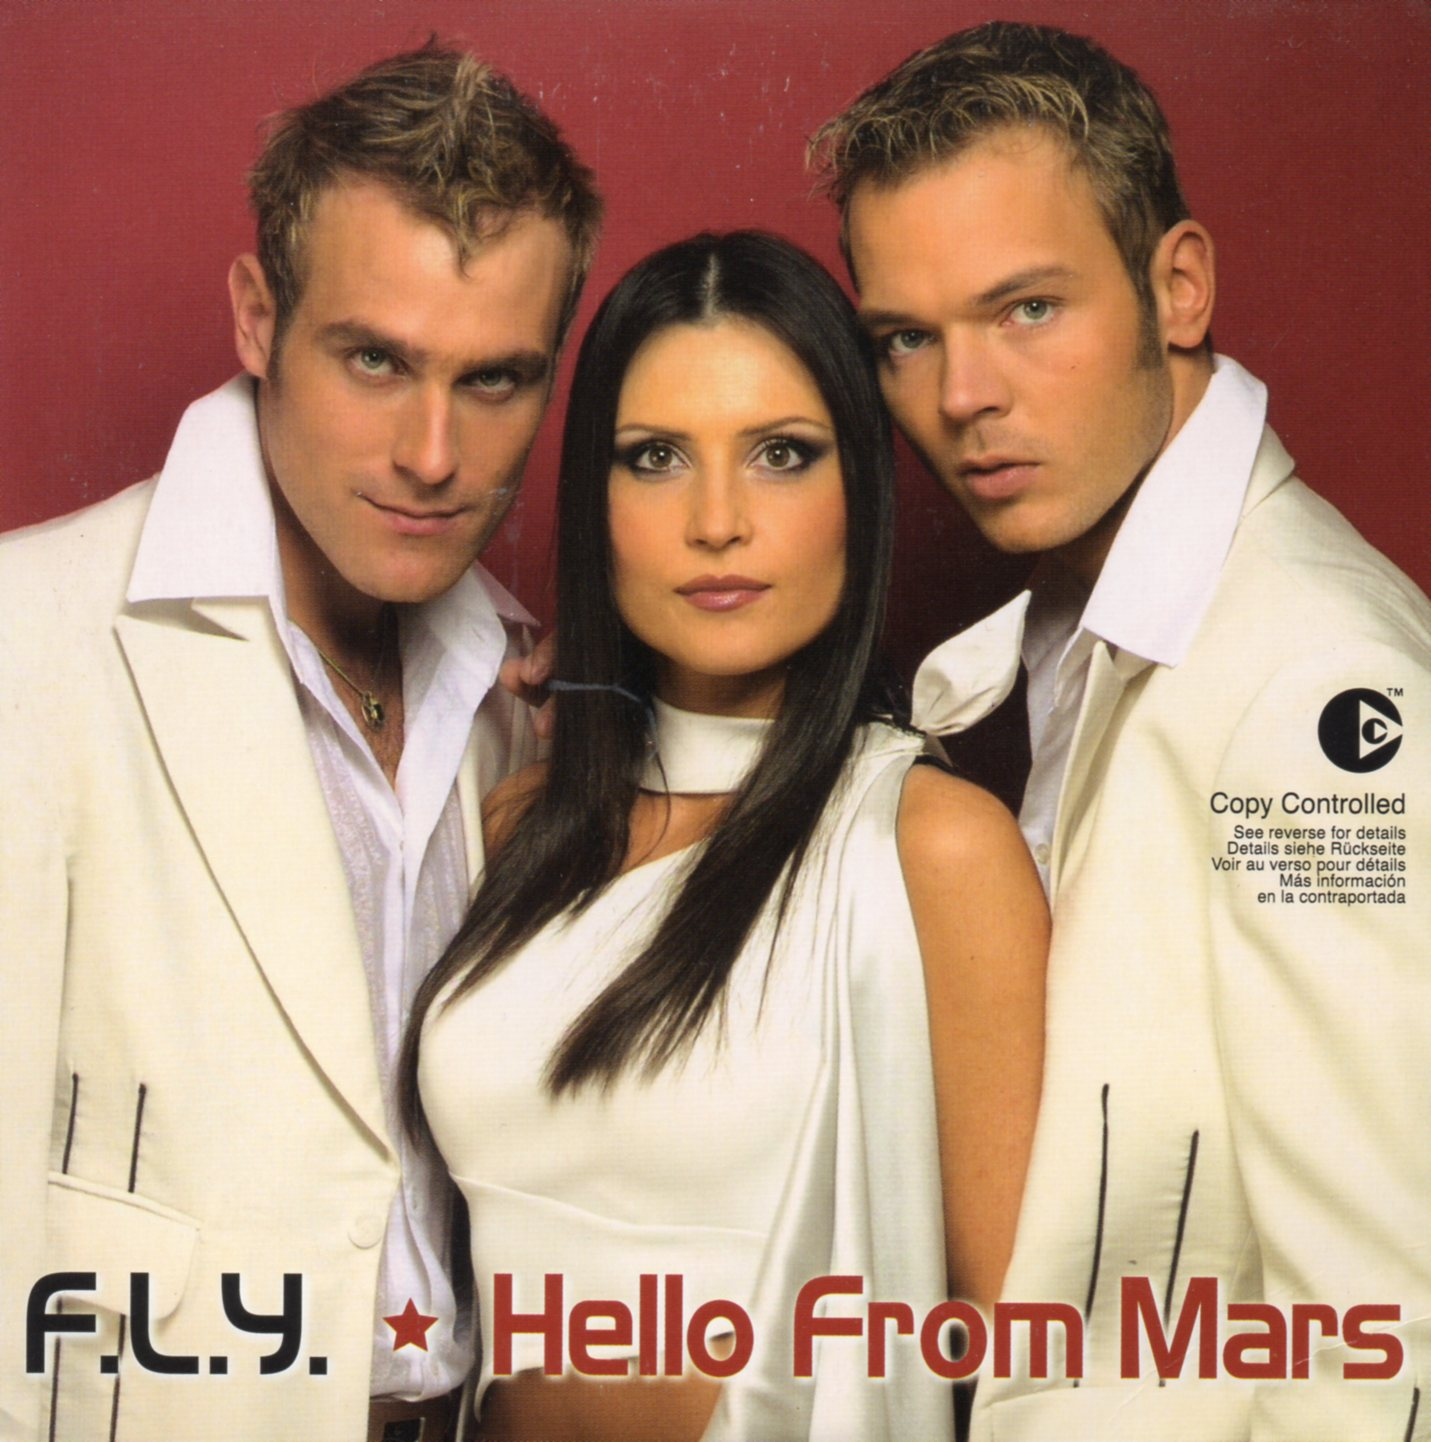 EUROVISION 2003 LETONIE : FLY - Hello from Mars 4-Track CARD SLEEVE - CD single